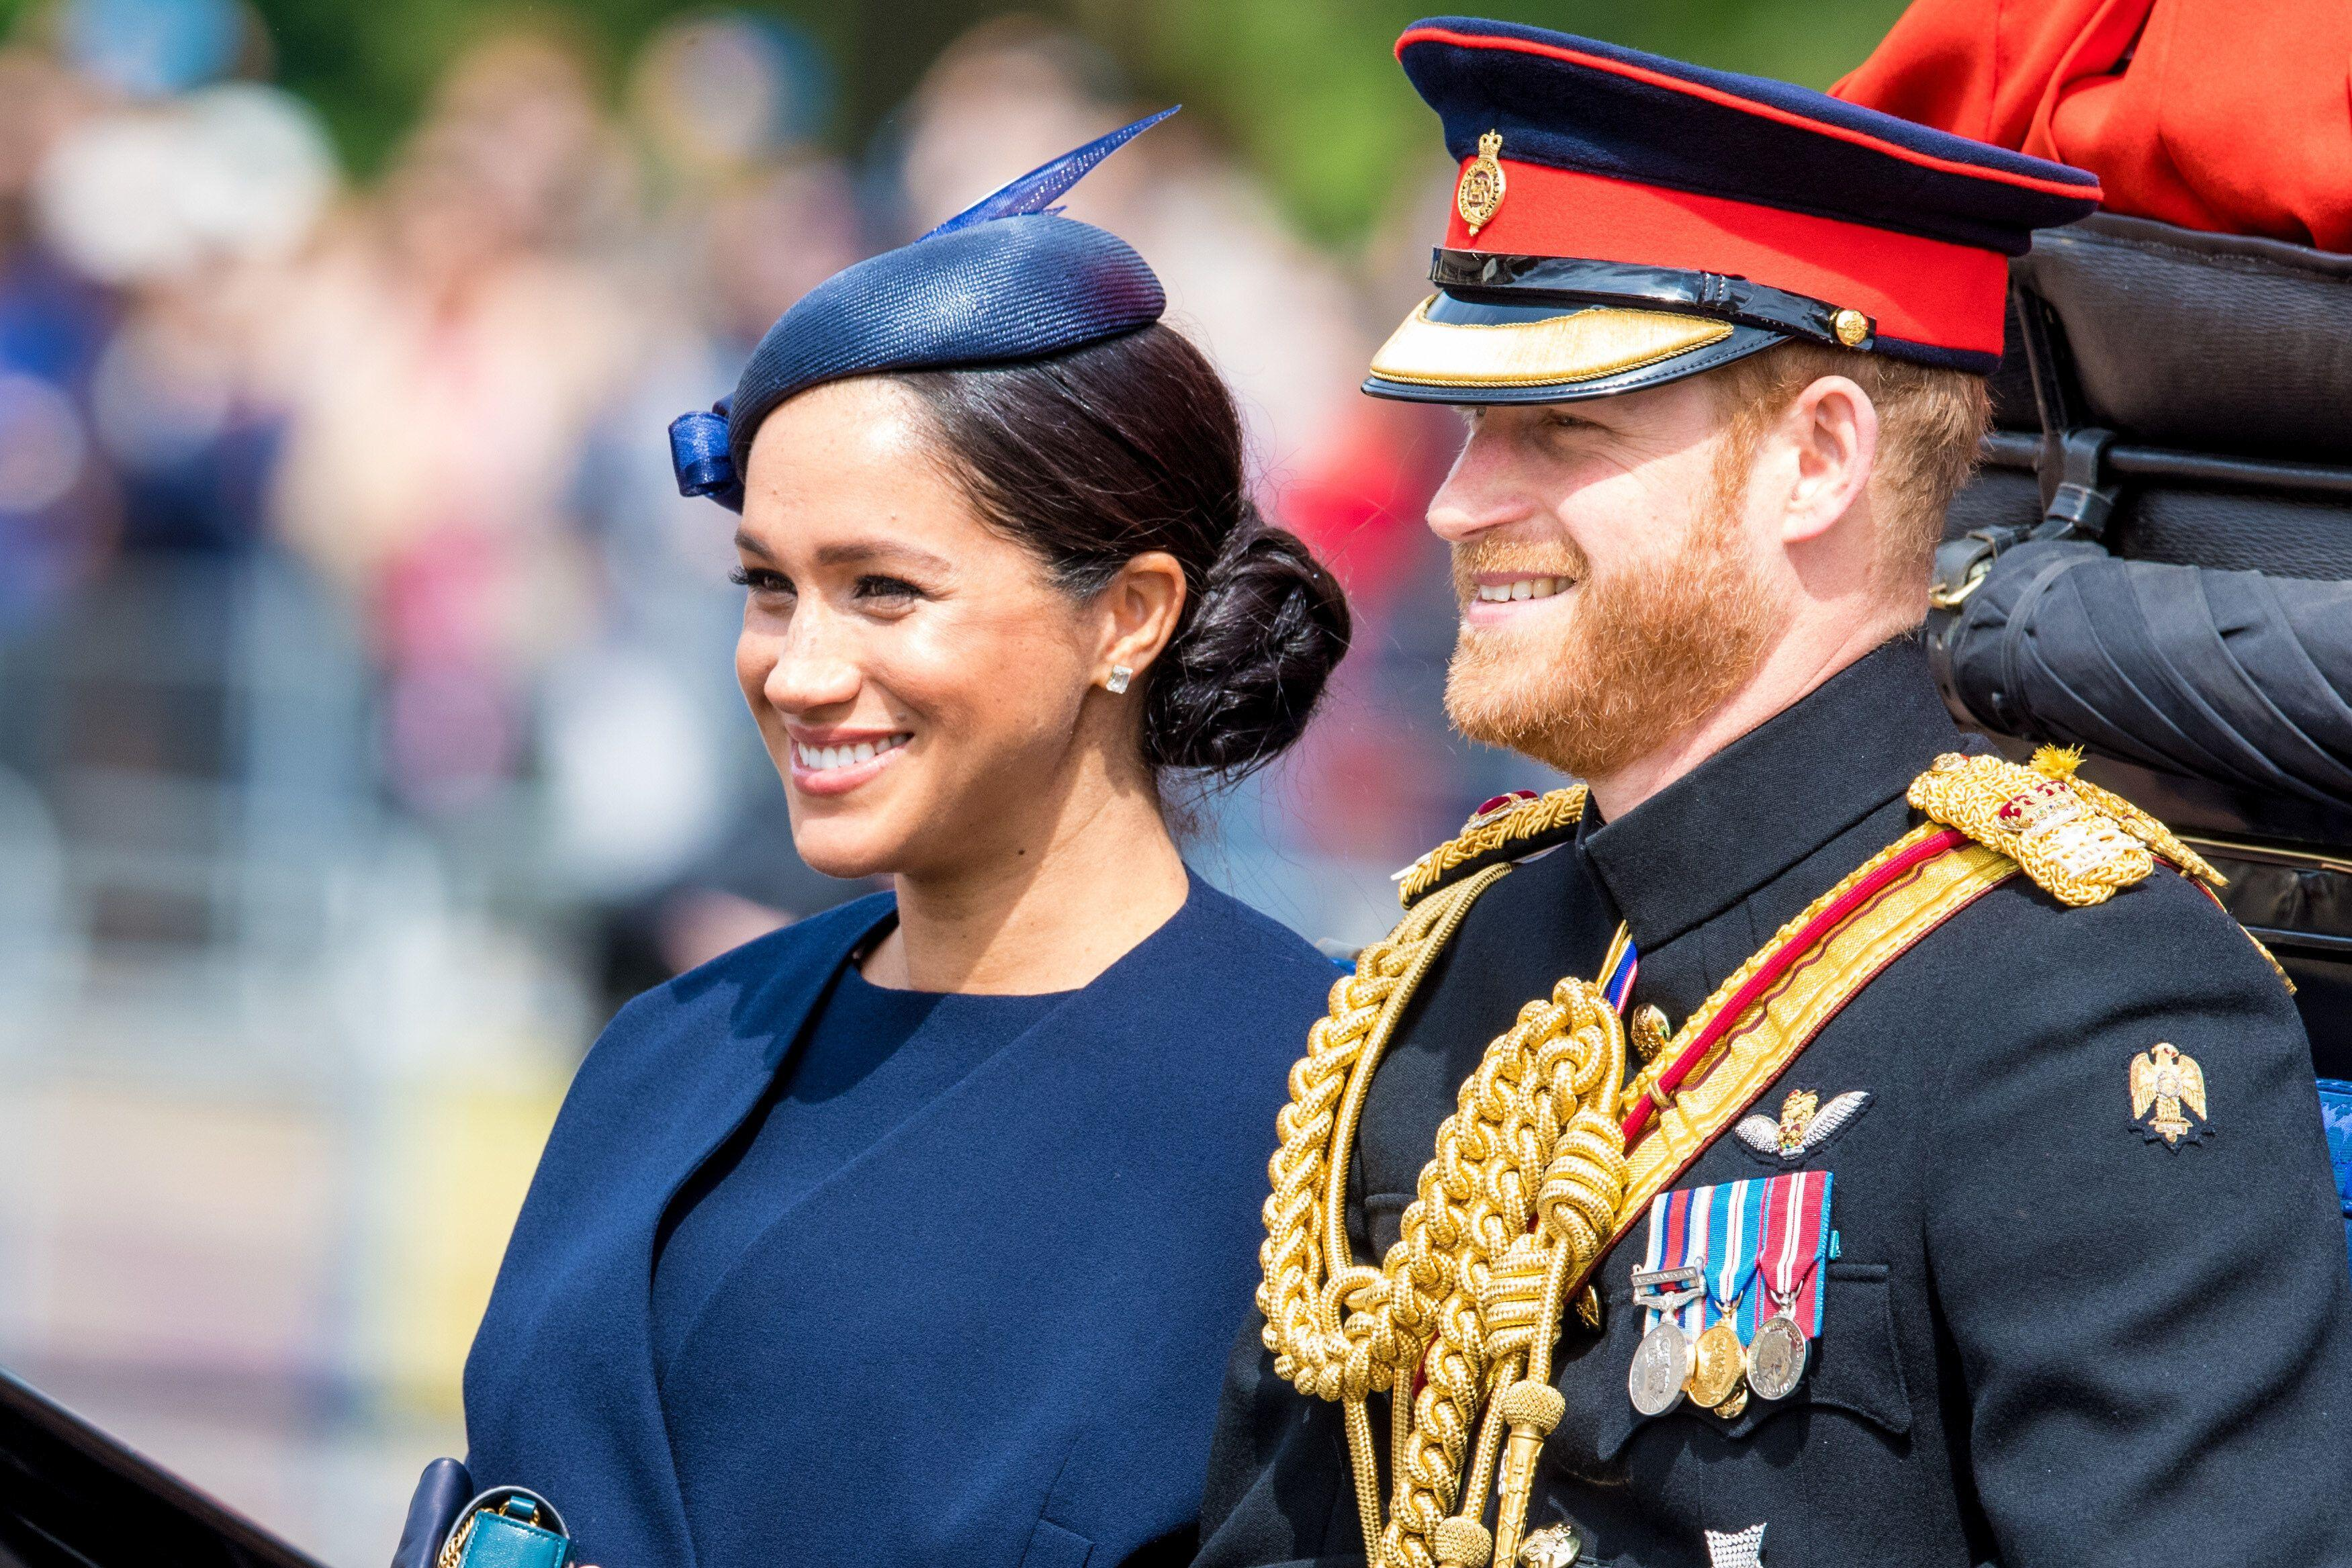 Prince Harry Duke of Sussex and Meghan Markle Duchess of Sussex during Trooping the Colour ceremony, marking the monarch's official birthday, in London. (Photo by DPPA/Sipa USA)